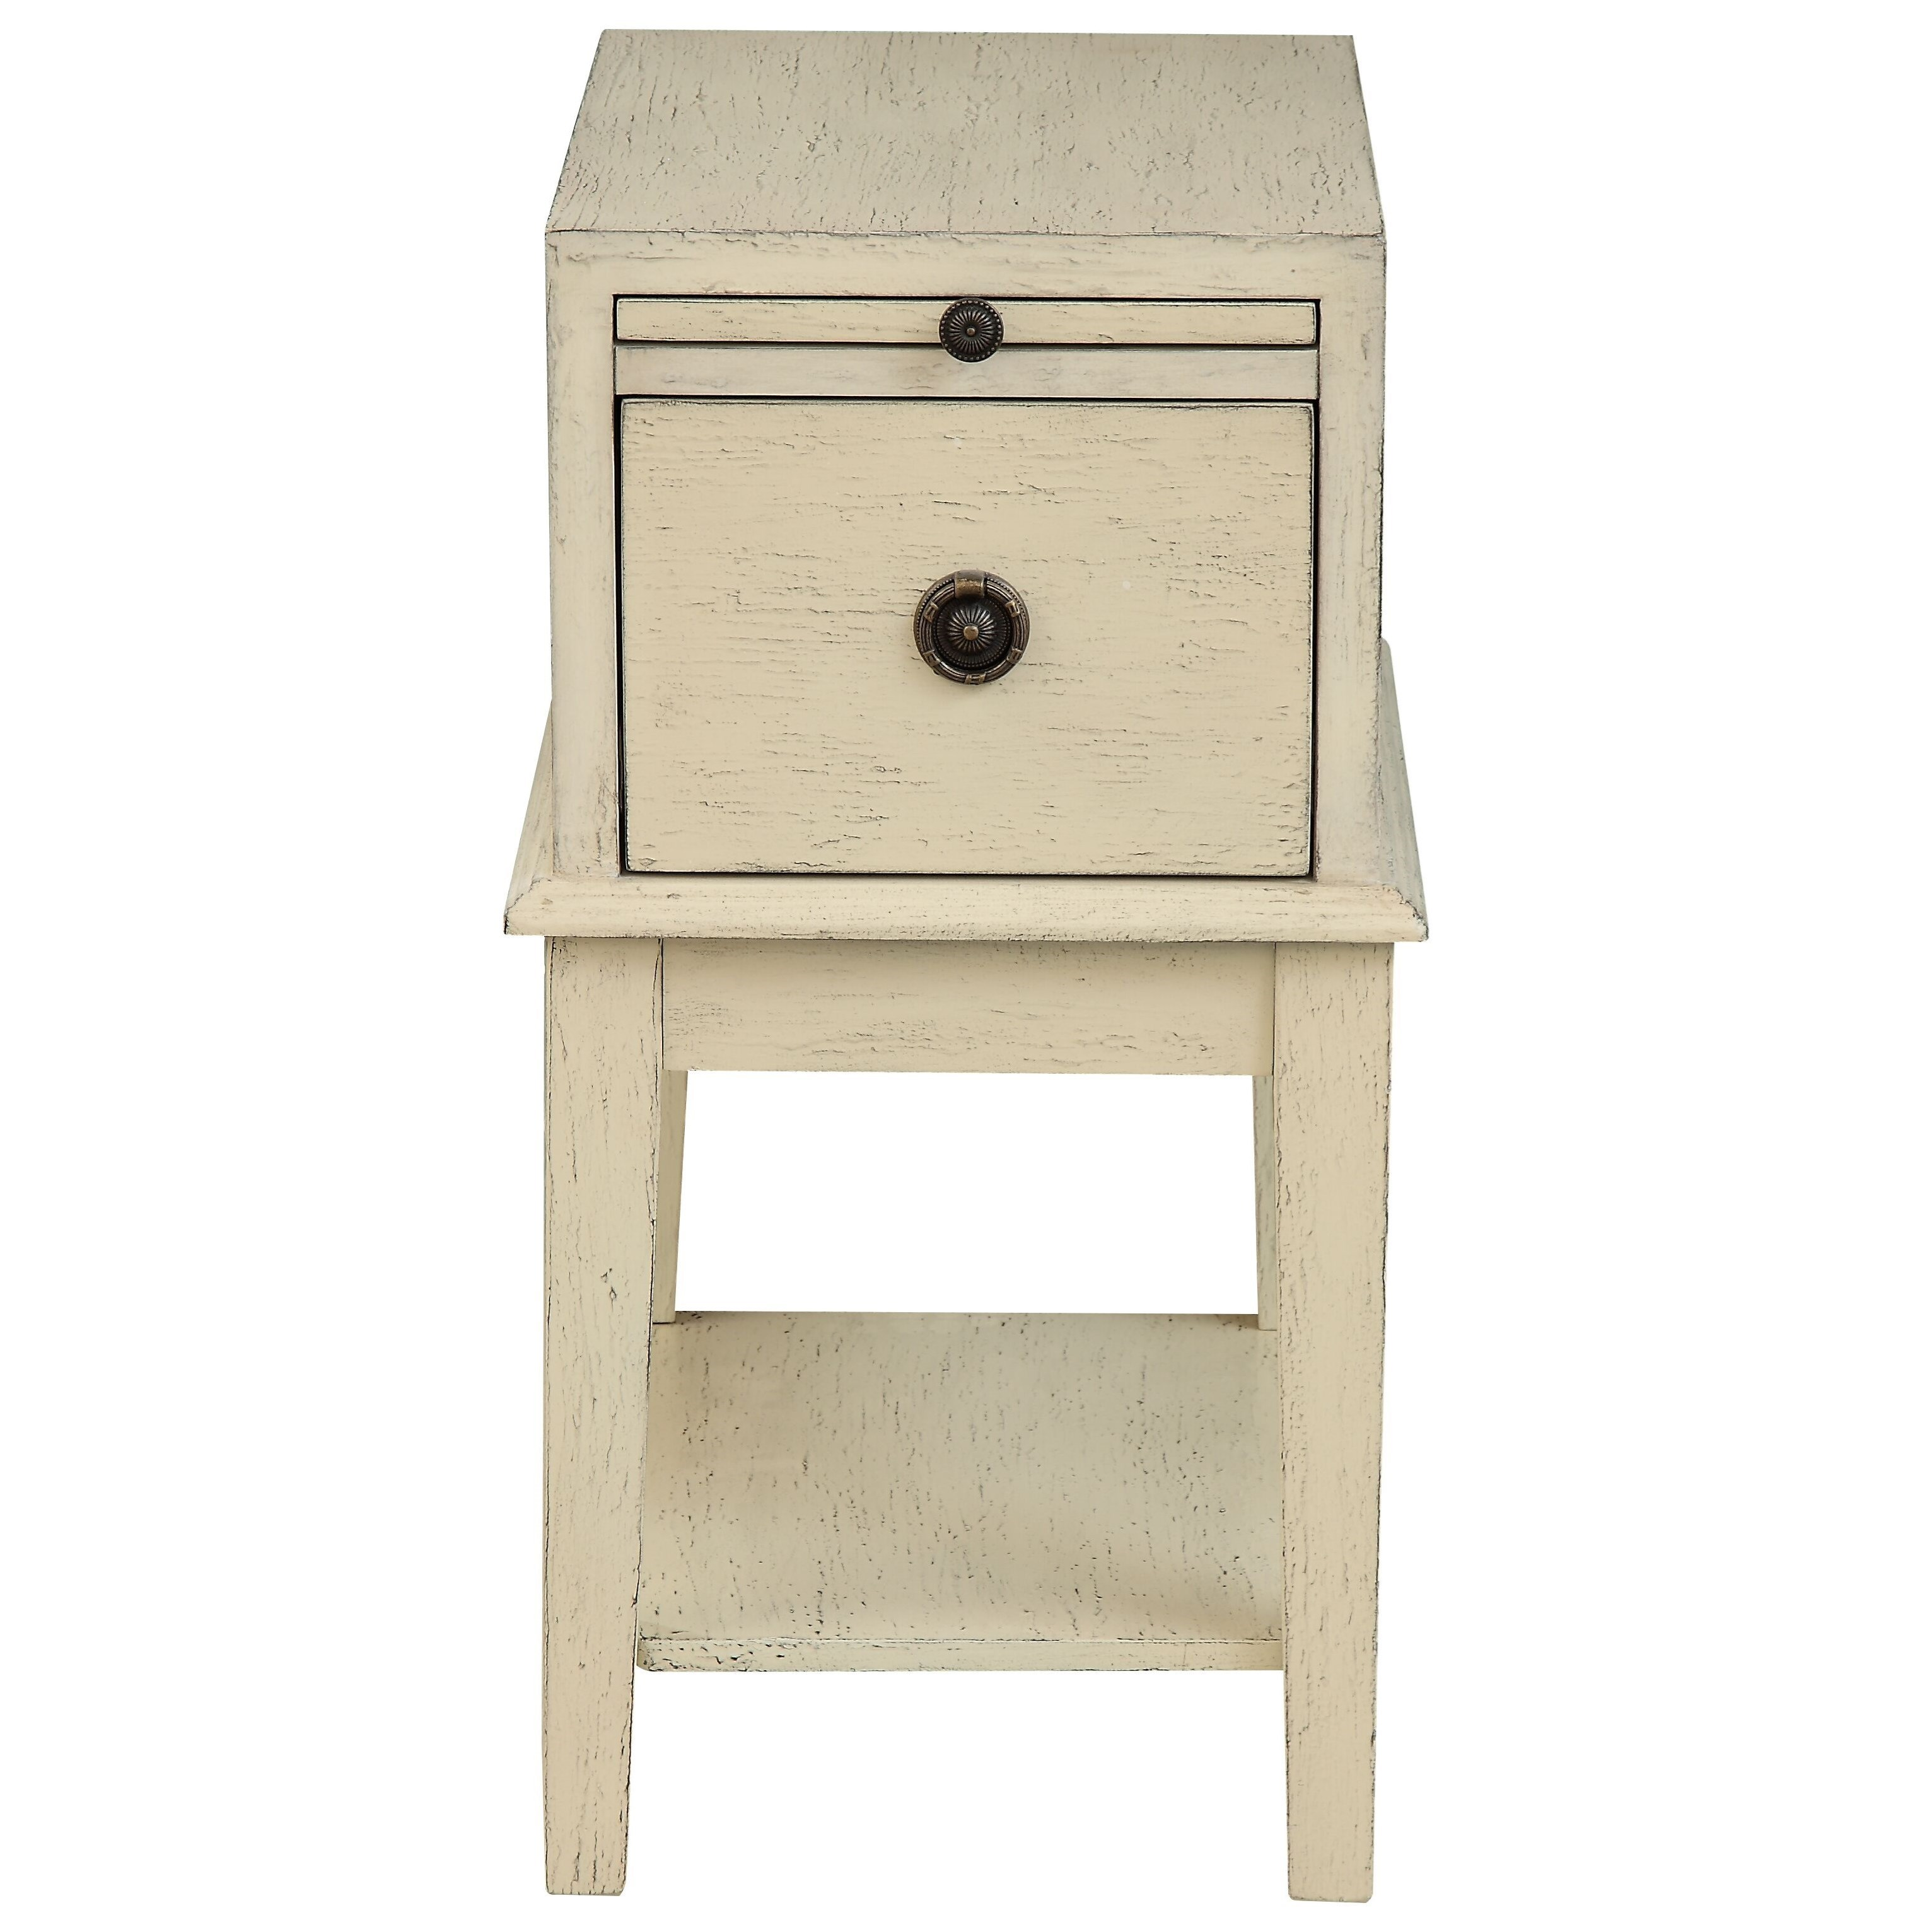 C2C Accents One Drawer Chairside Table by C2C at Walker's Furniture